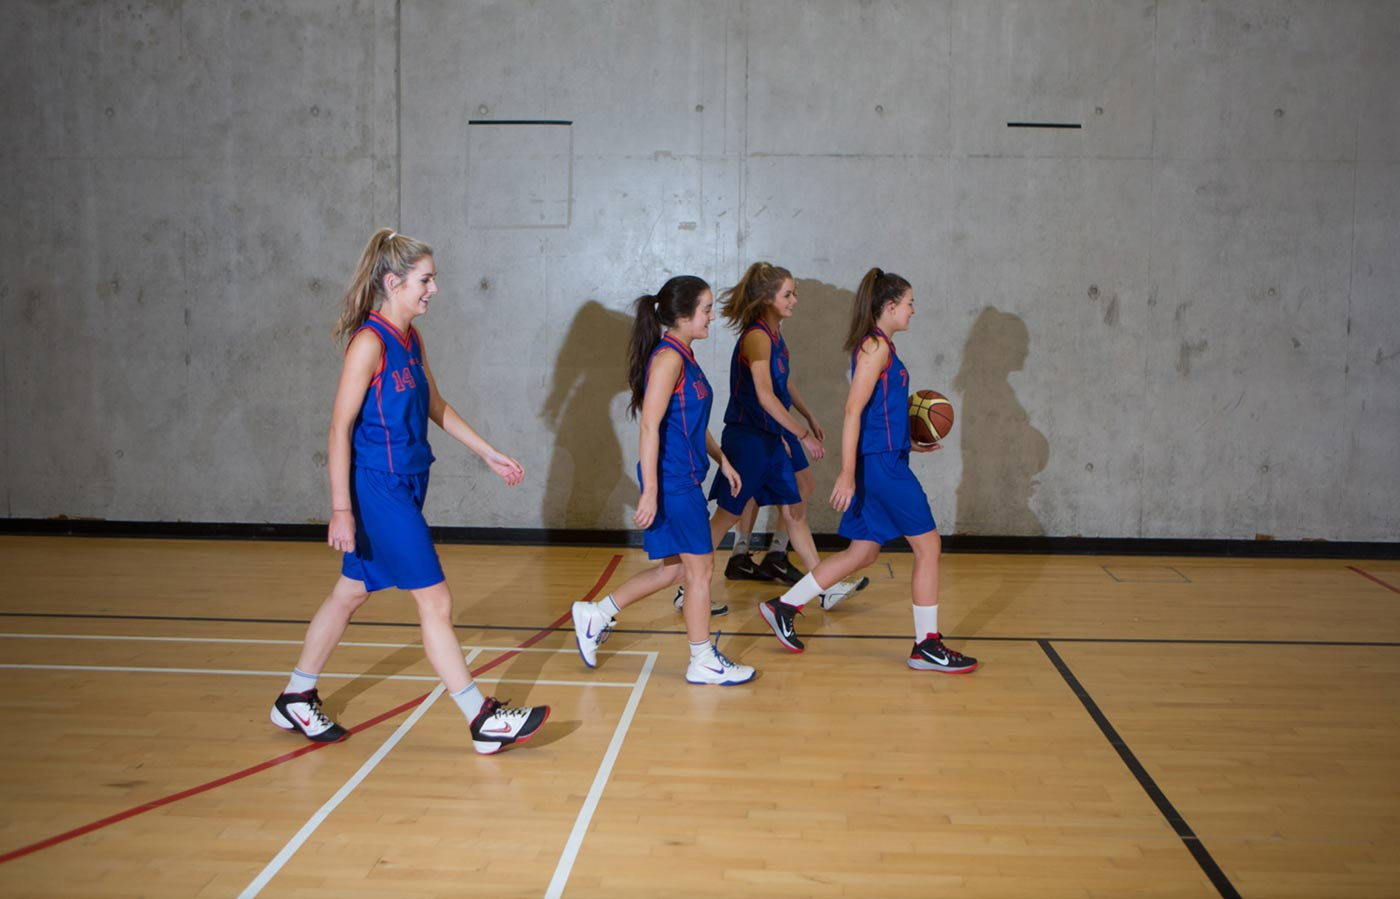 MIC video and photography production of ladies basketball team in new facilities